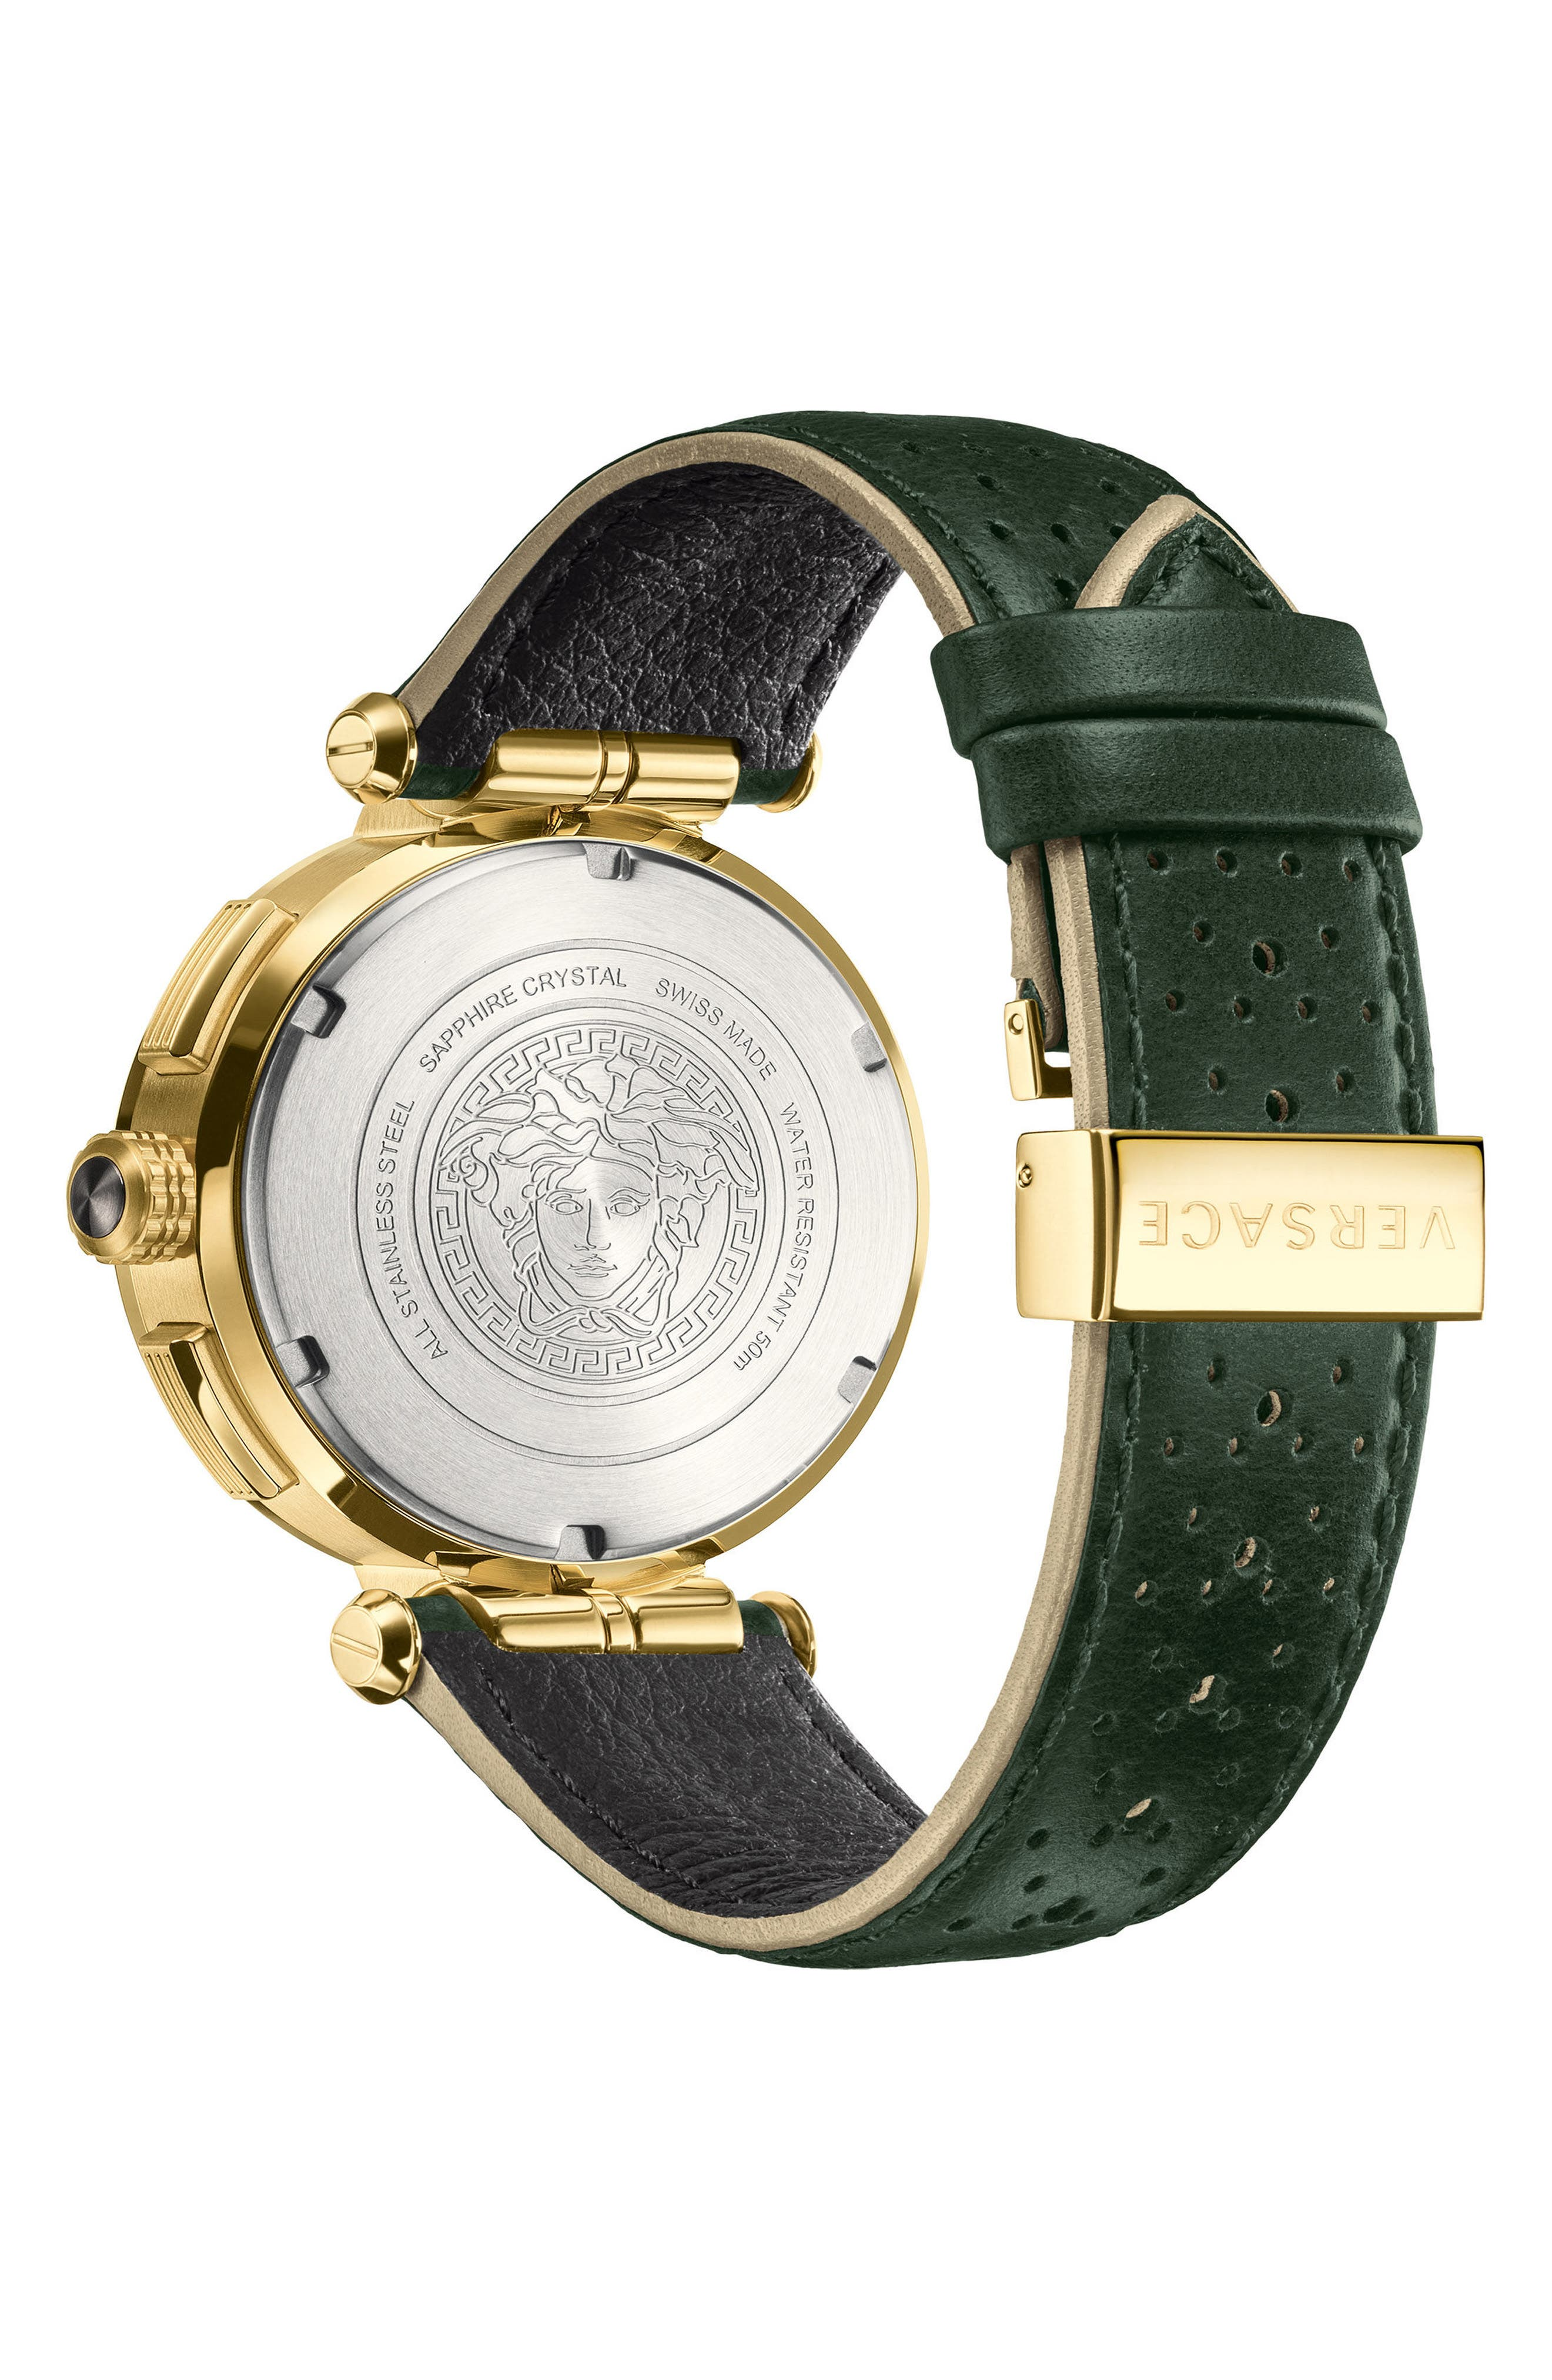 VERSACE, Aion Chronograph Leather Strap Watch, 45mm, Alternate thumbnail 2, color, GREY/ SILVER/ GOLD